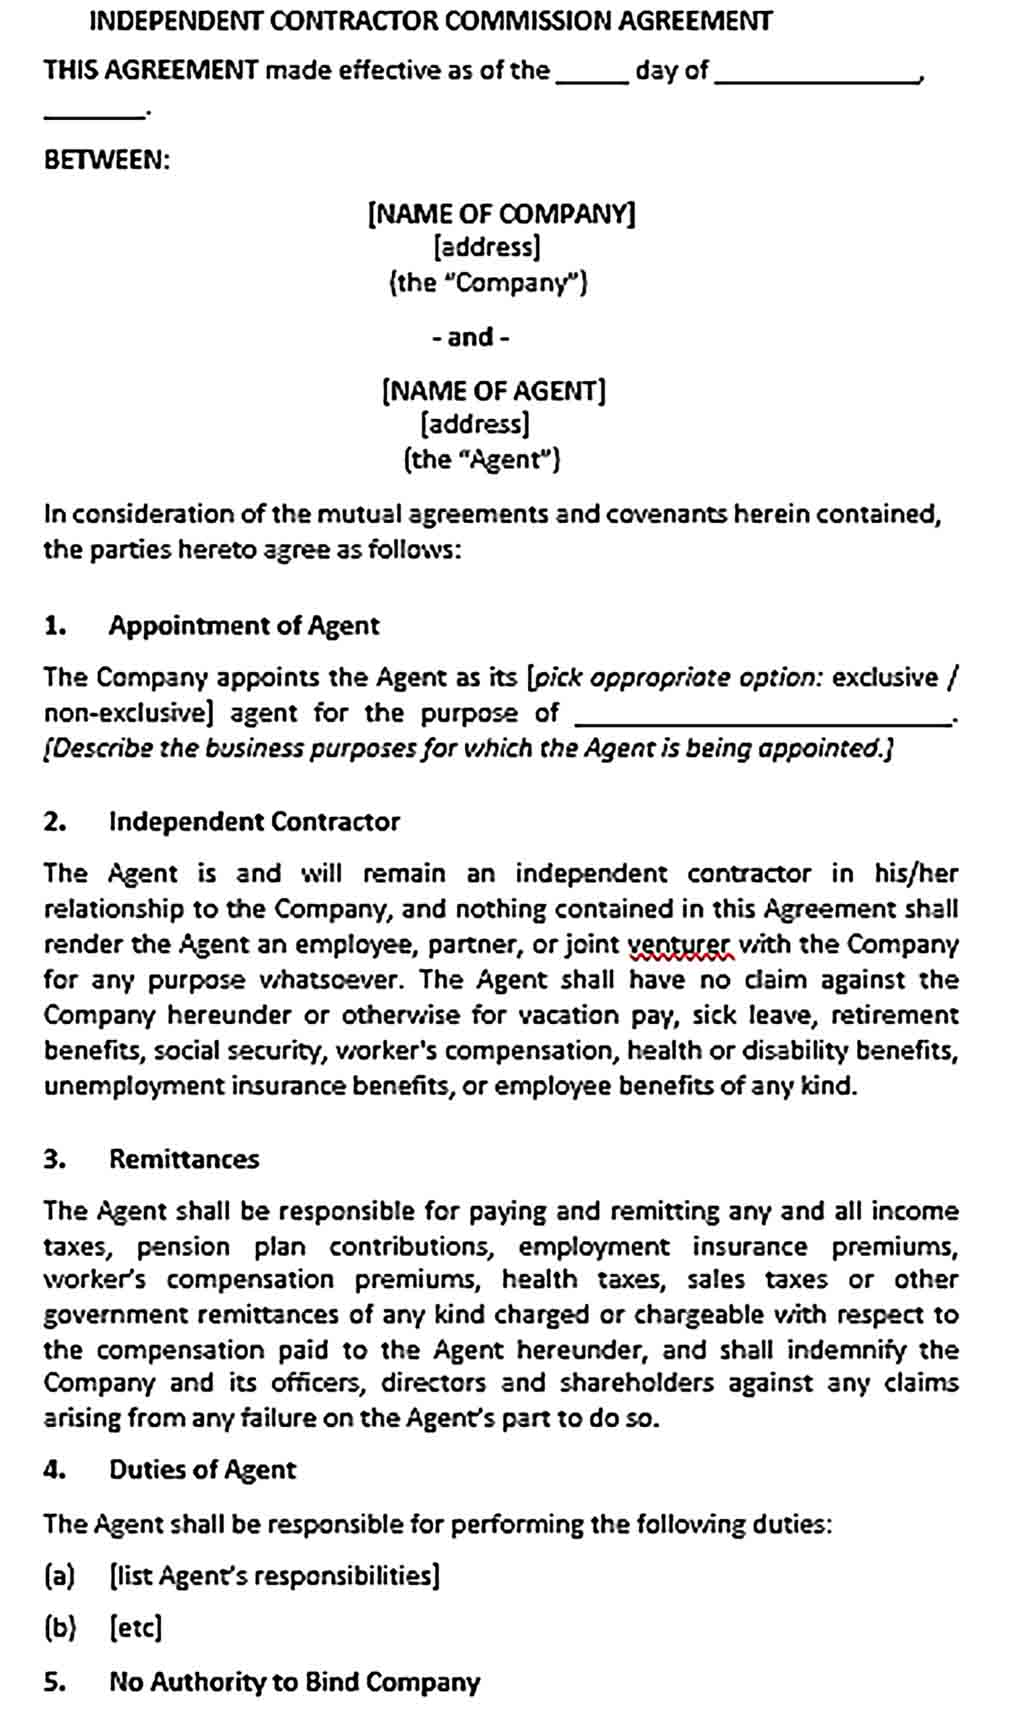 Sample Independent Contractor Commission Agreement